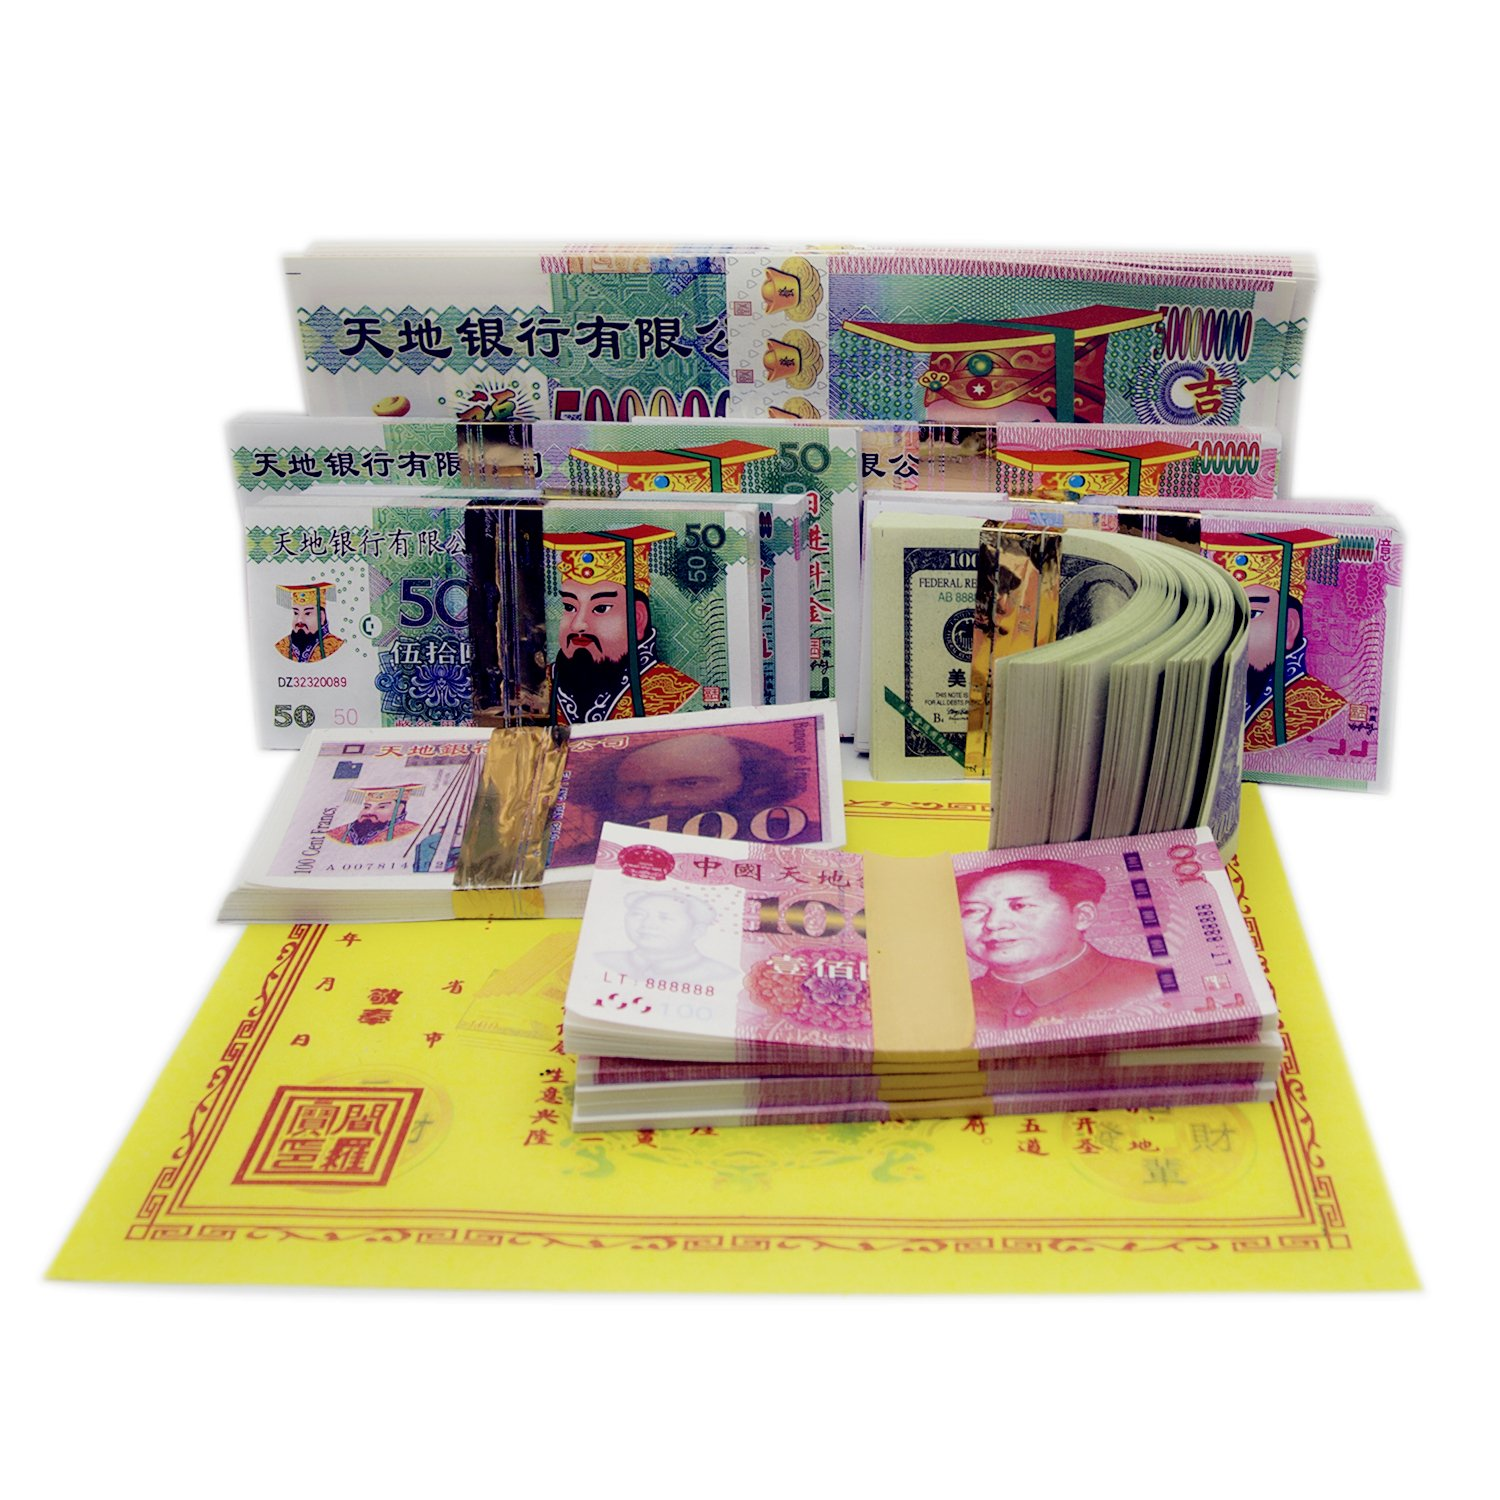 CONHECI 400 Pcs Joss Paper Money Ghost Money,Hell Bank Notes for Funerals, The Qingming Festival and The Hungry Ghost Festival ,in Honor of Ancestors,Good Wishes,Pray for Good Fortune.